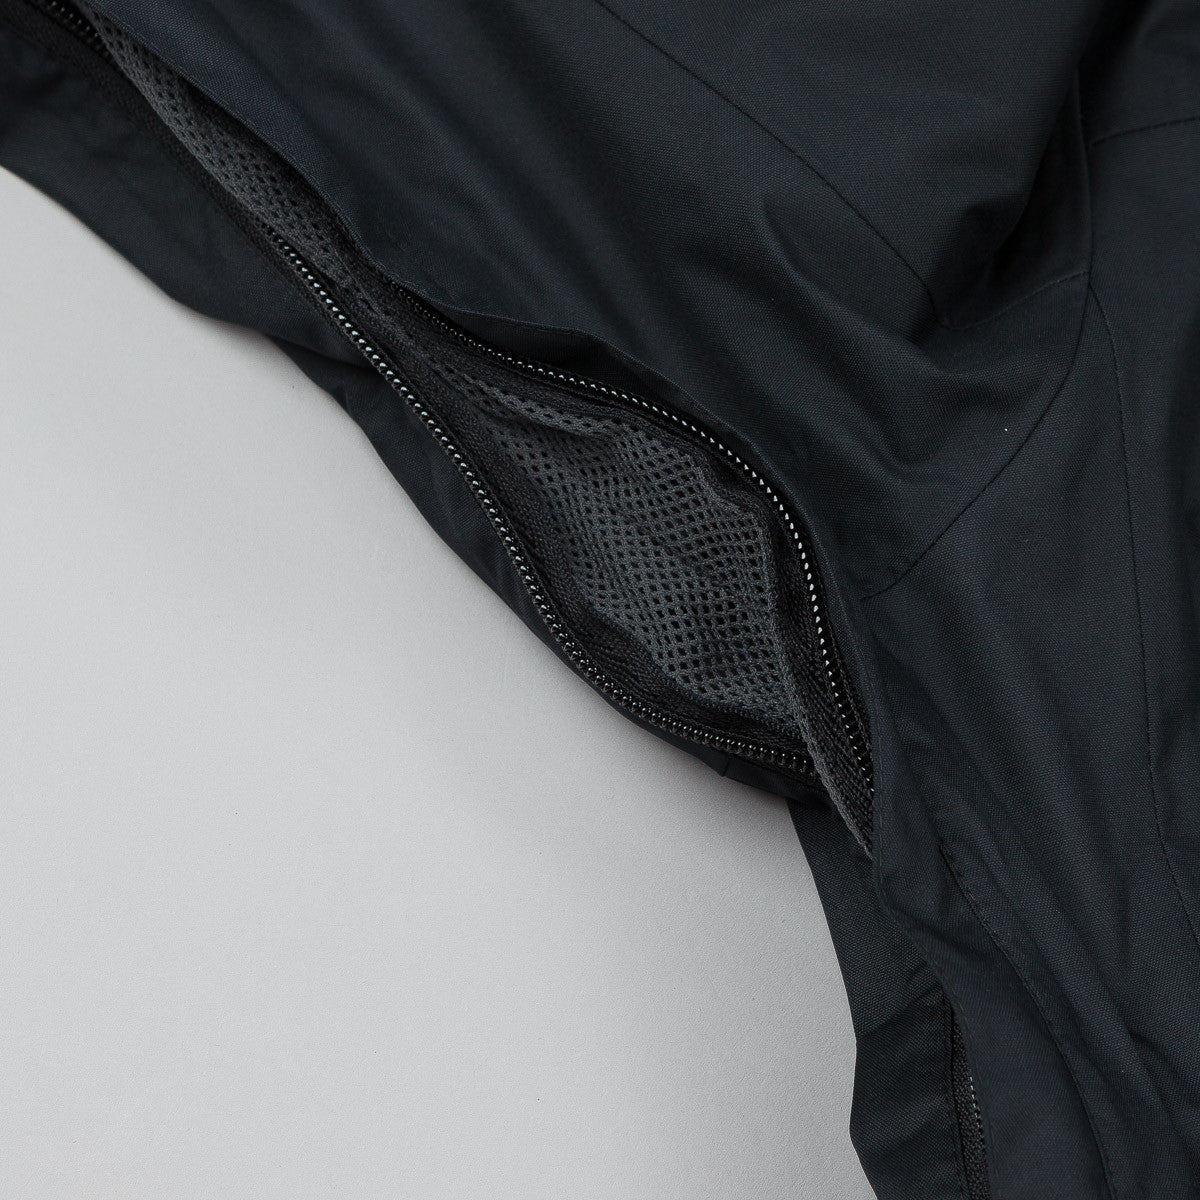 Nike SB Empire Jacket - Black / Silver